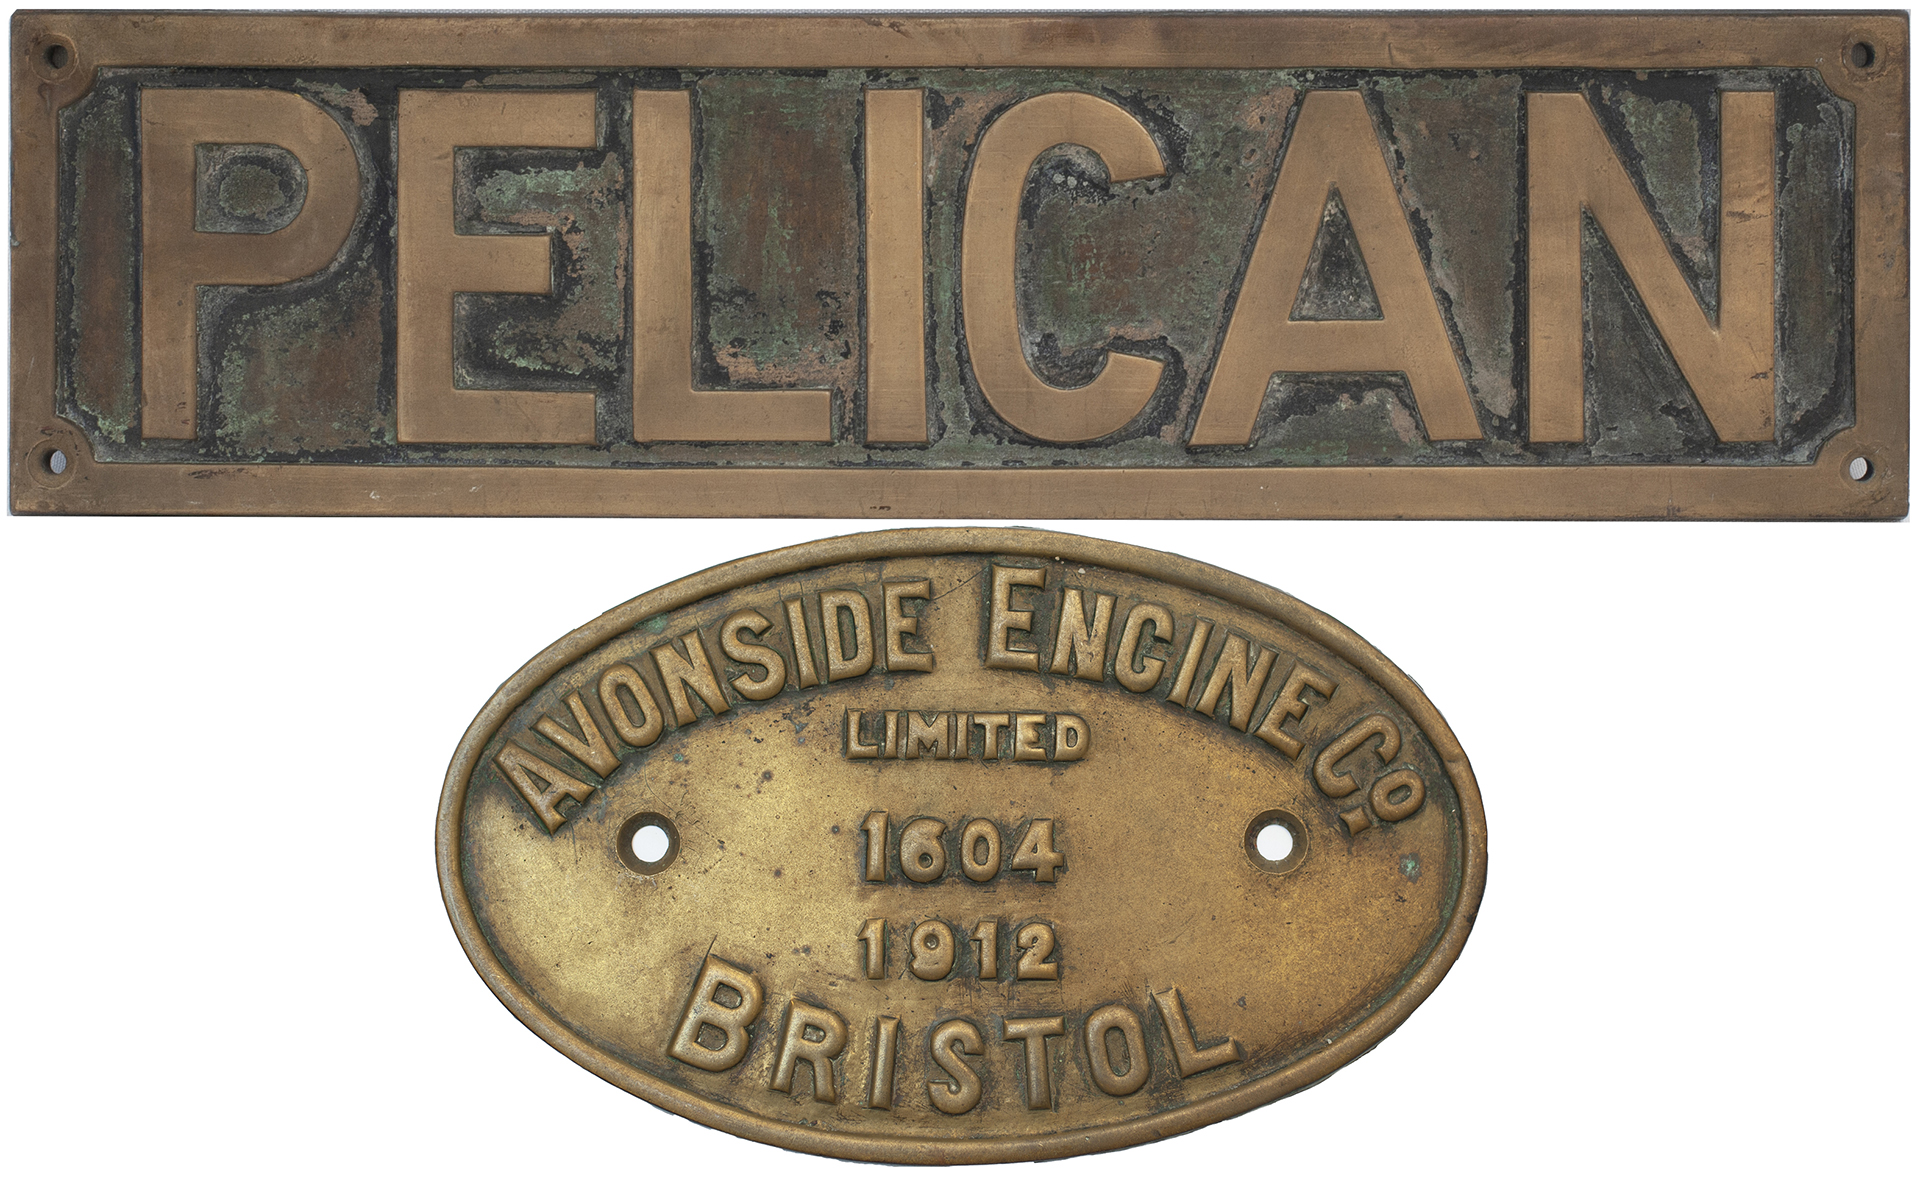 Nameplate PELICAN together with its matching worksplate AVONSIDE ENGINE Co LIMITED BRISTOL 1604